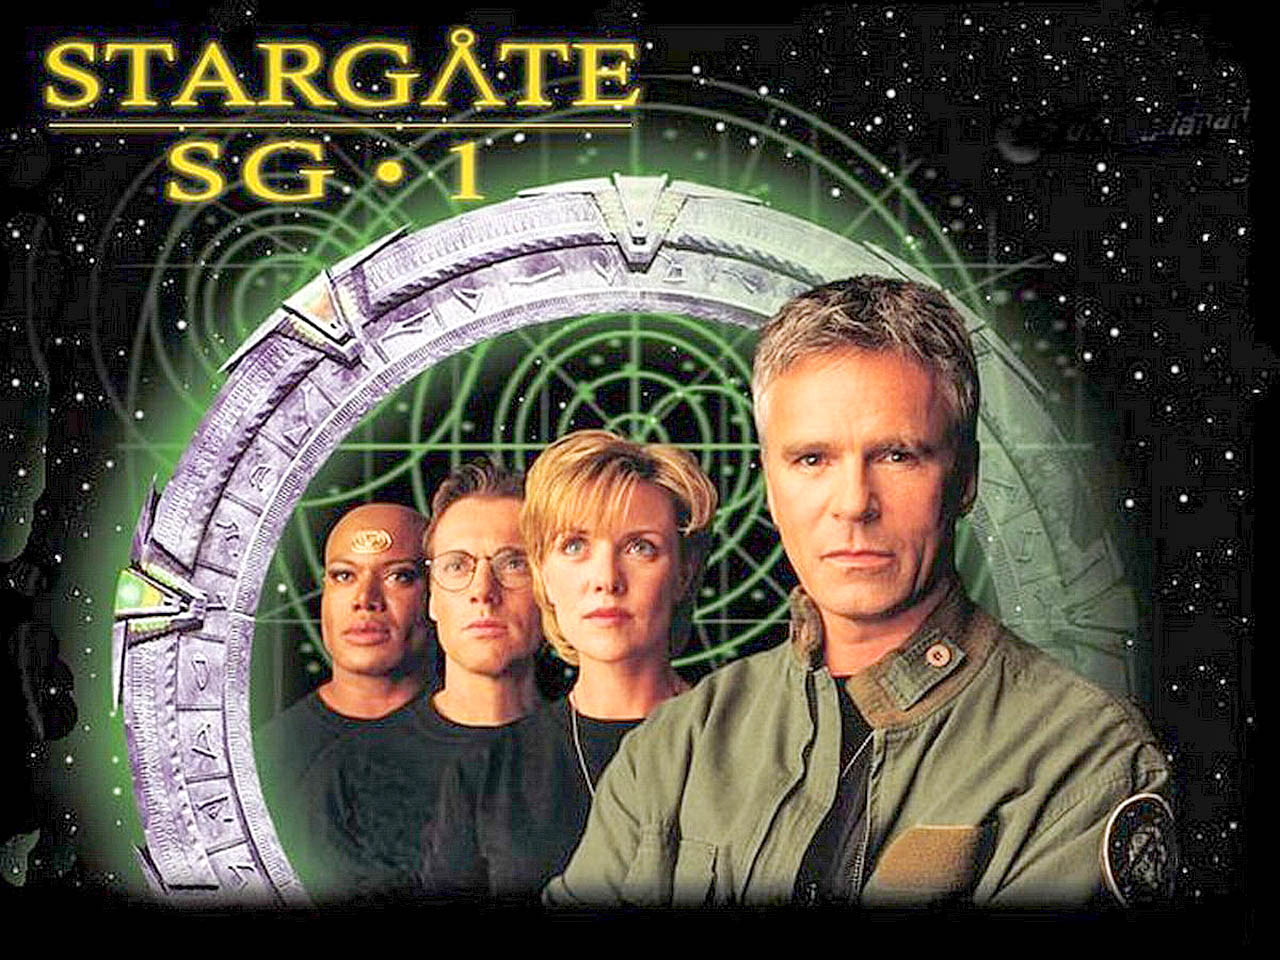 Smart Compatible Stargate Sg-1 Tv Show High Quality Hd Wallpapers - All Hd